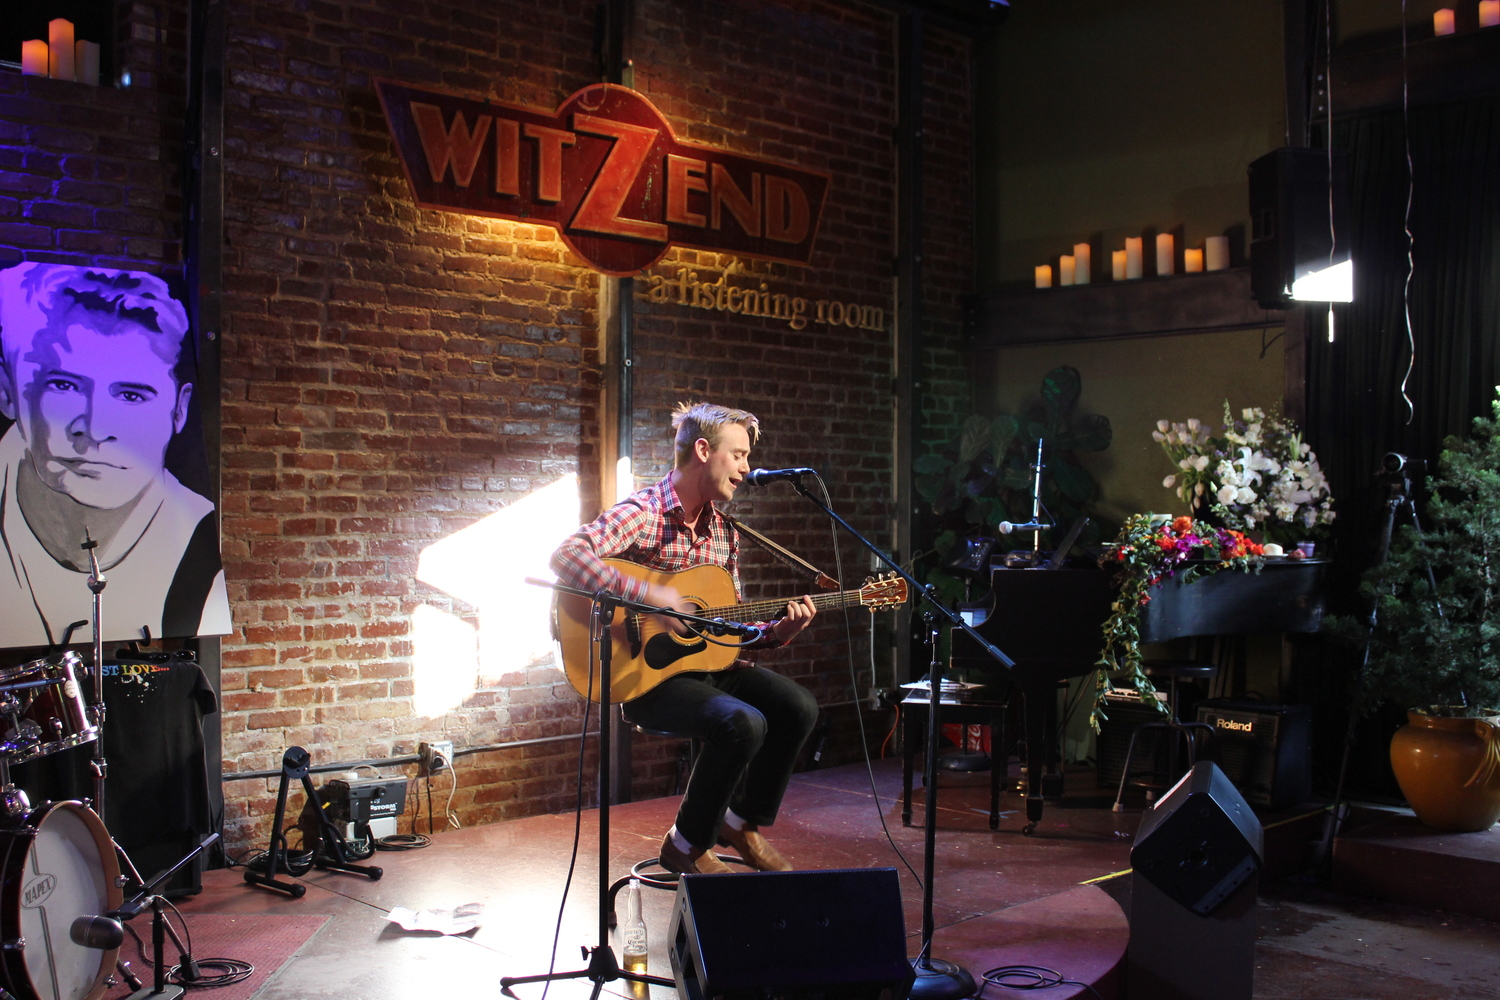 During the  Venice Music Crawl  in September 2013, the WitZend stage became asomber tribute to founder Jeb Milne who passed away just days before the event.